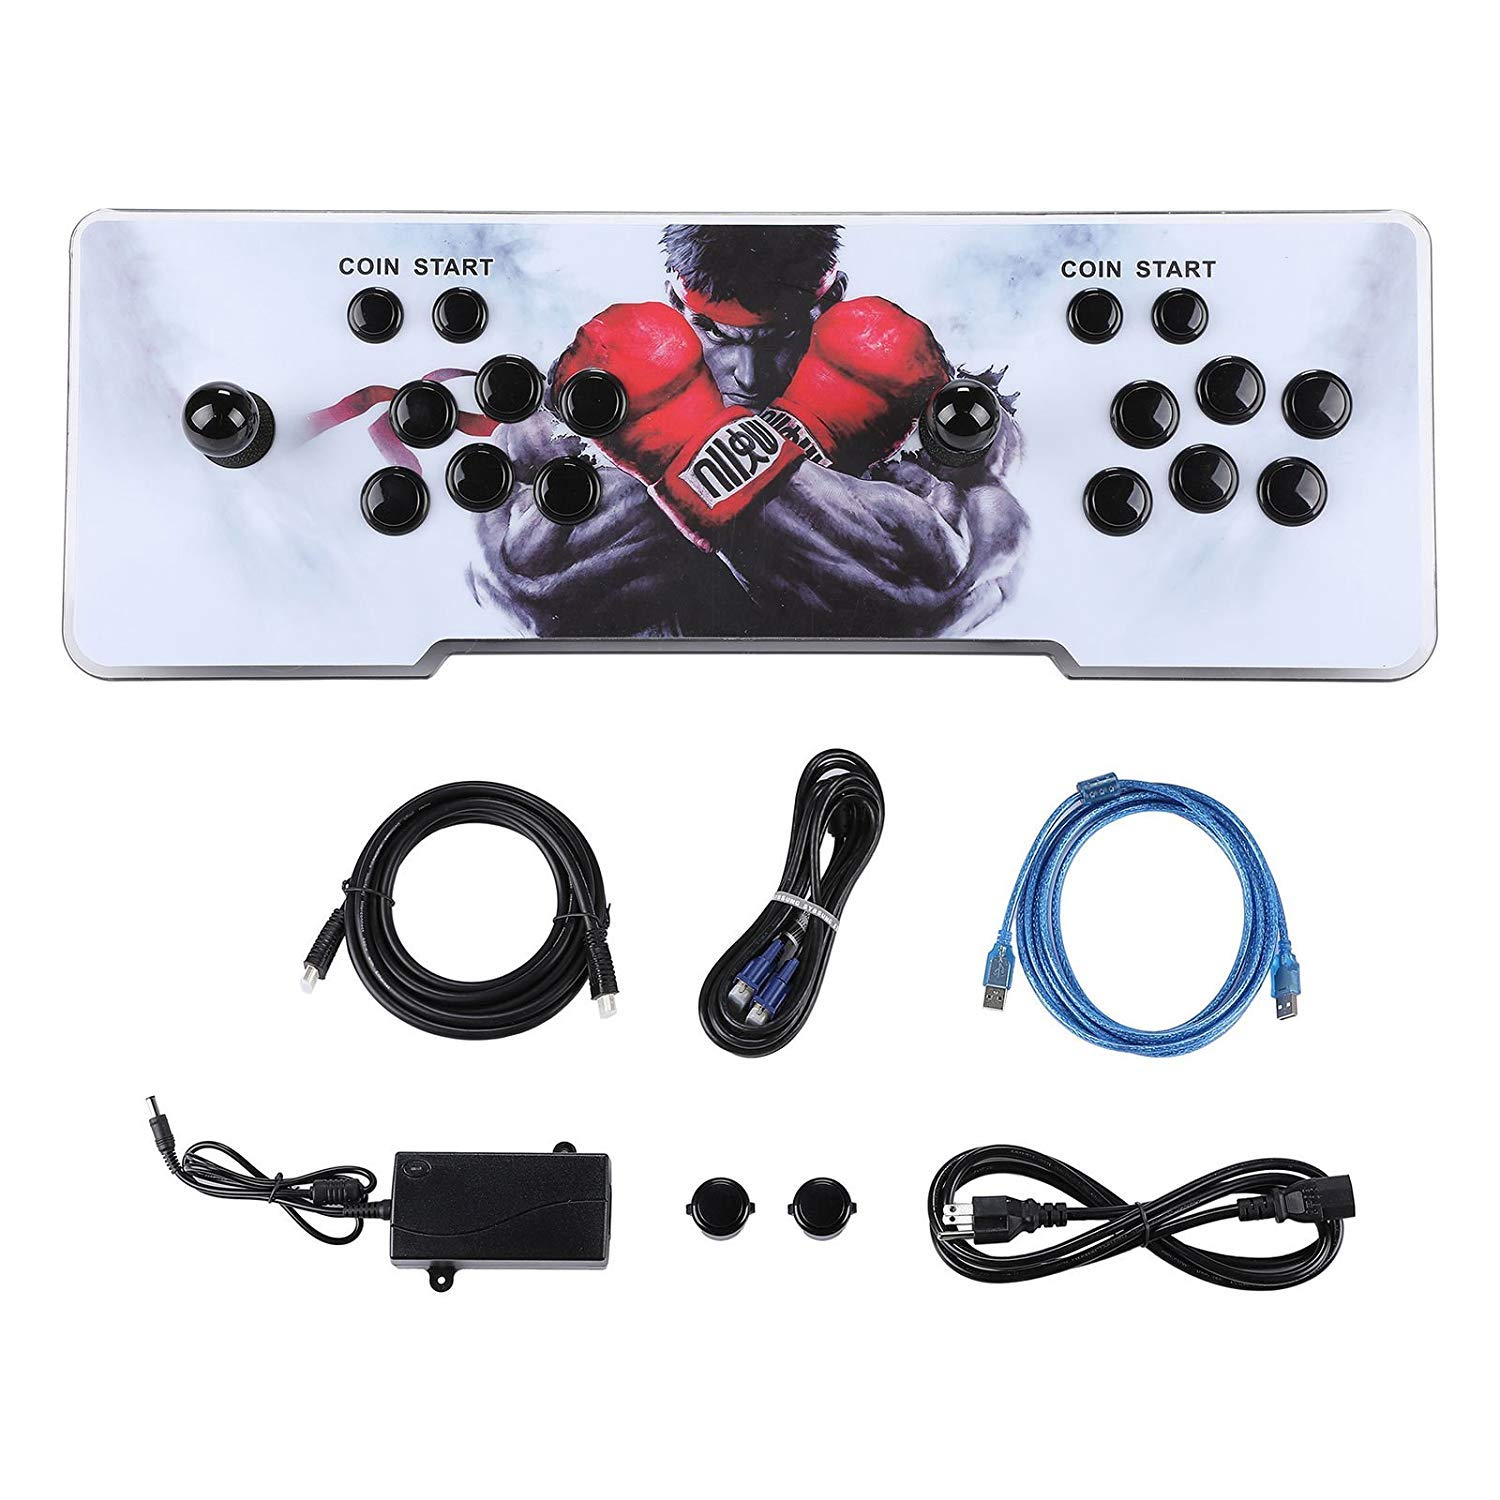 Happybuy Real Pandora's Box 6 Arcade Game Console HD Retro 3D Pandora's Key 7 Arcade Video Game 1500 in 1 Arcade Console with Arcade Joystick Support Expand Games for PC / Laptop / TV / PS4 by Happybuy (Image #2)